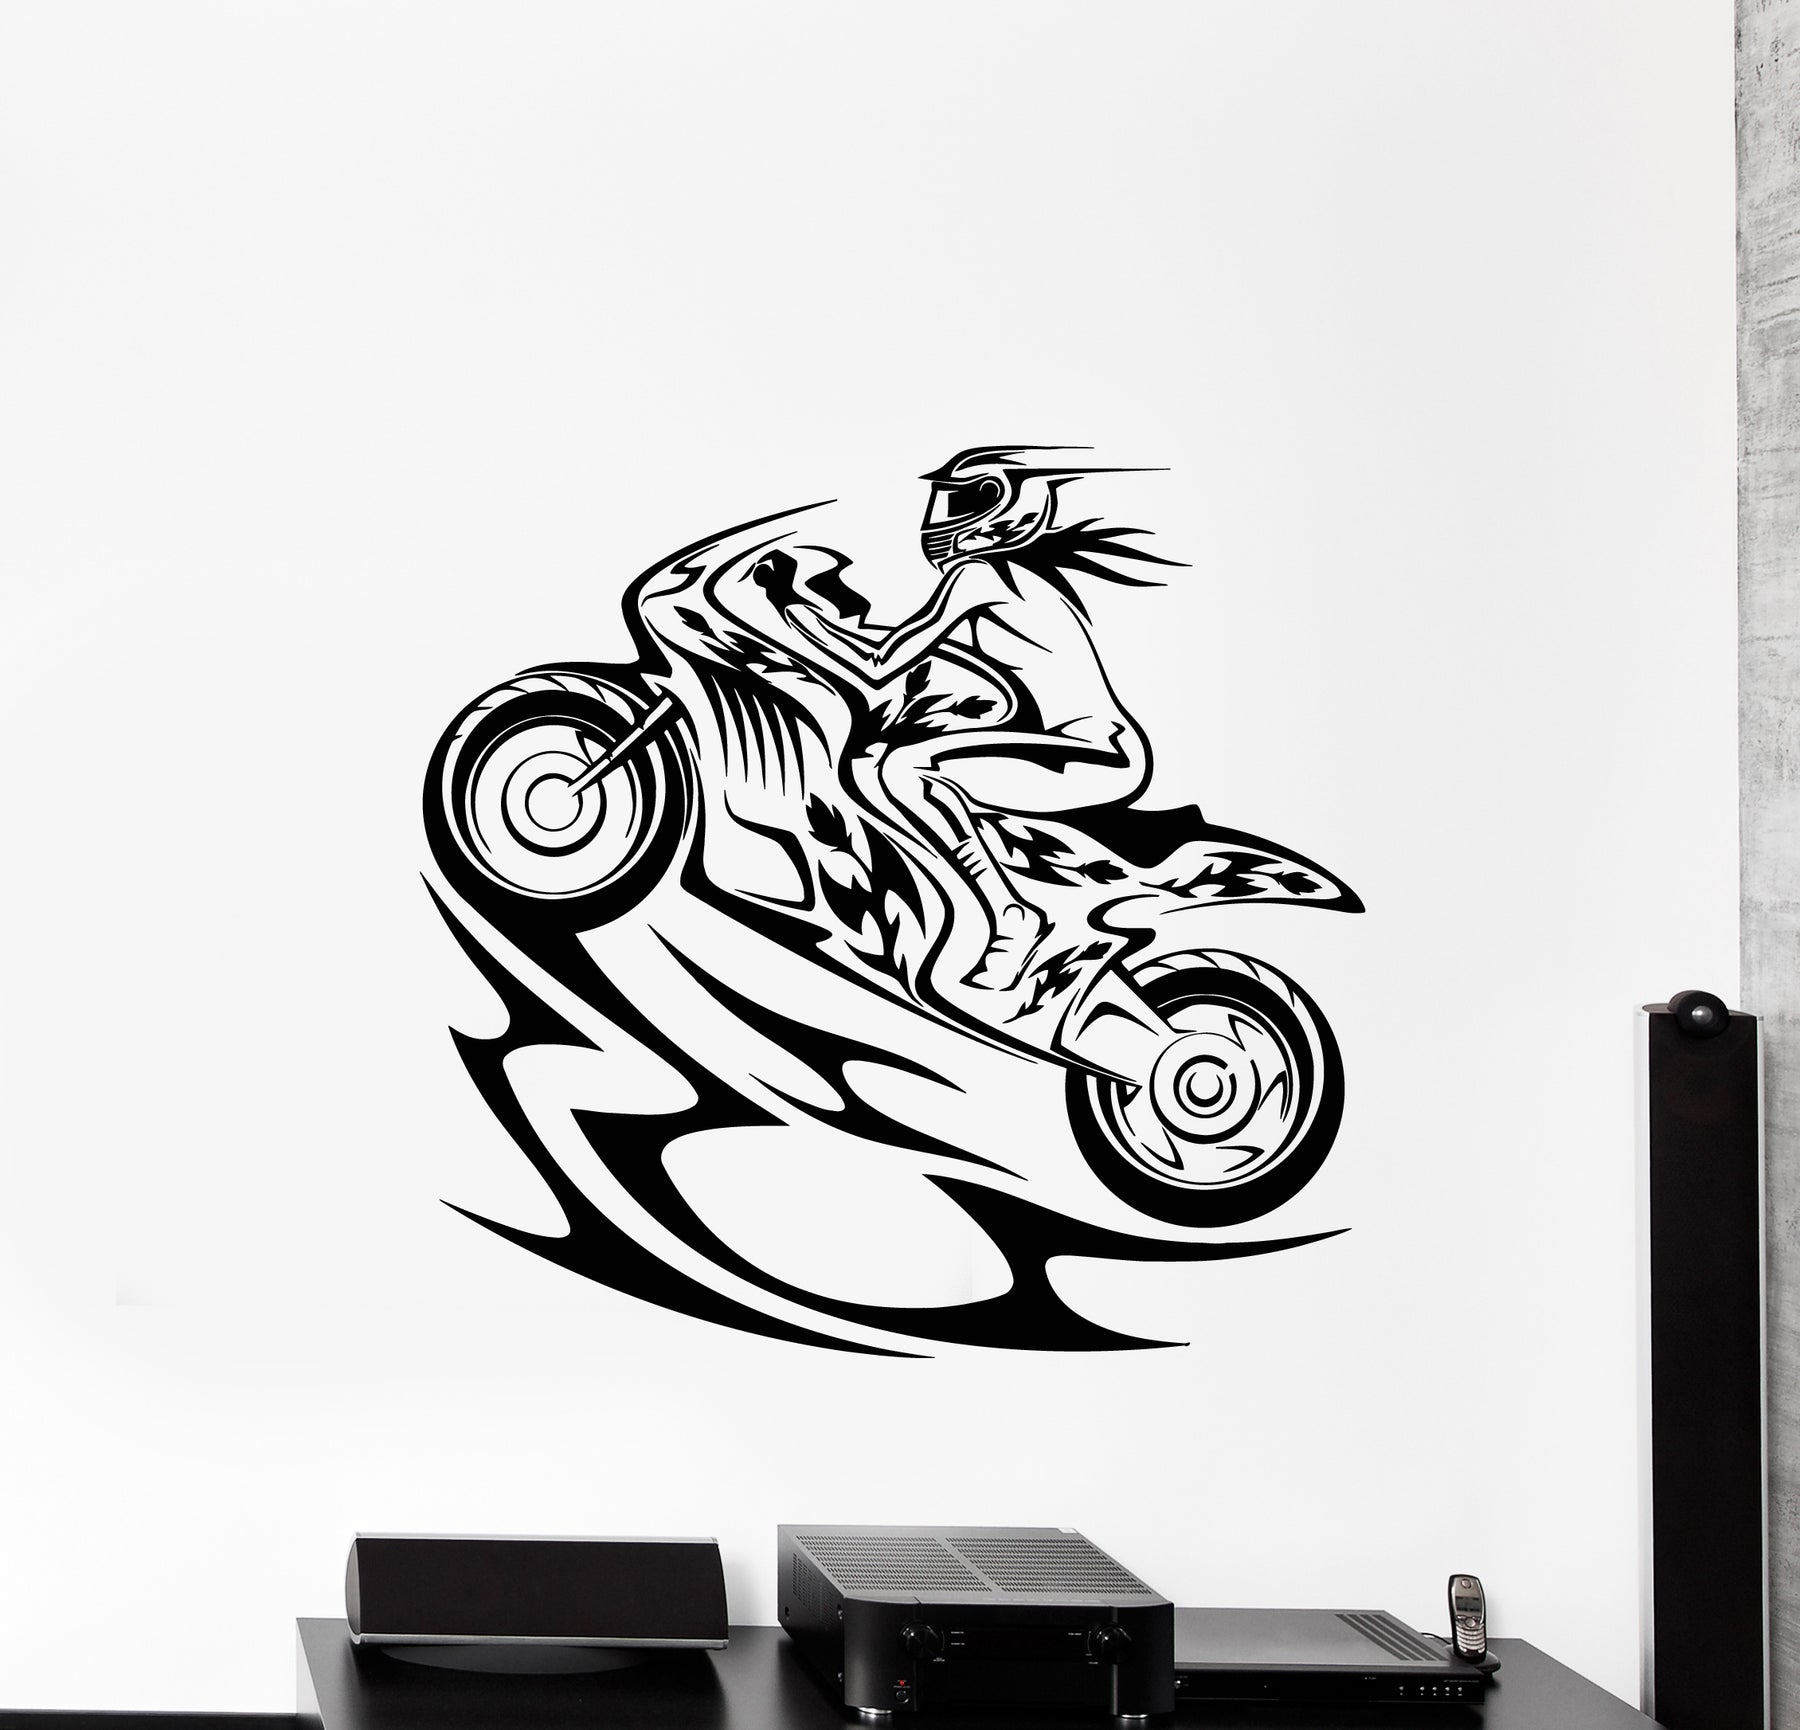 Vinyl wall decal girl biker motorsports bike race speed extreme sport stickers mural g522